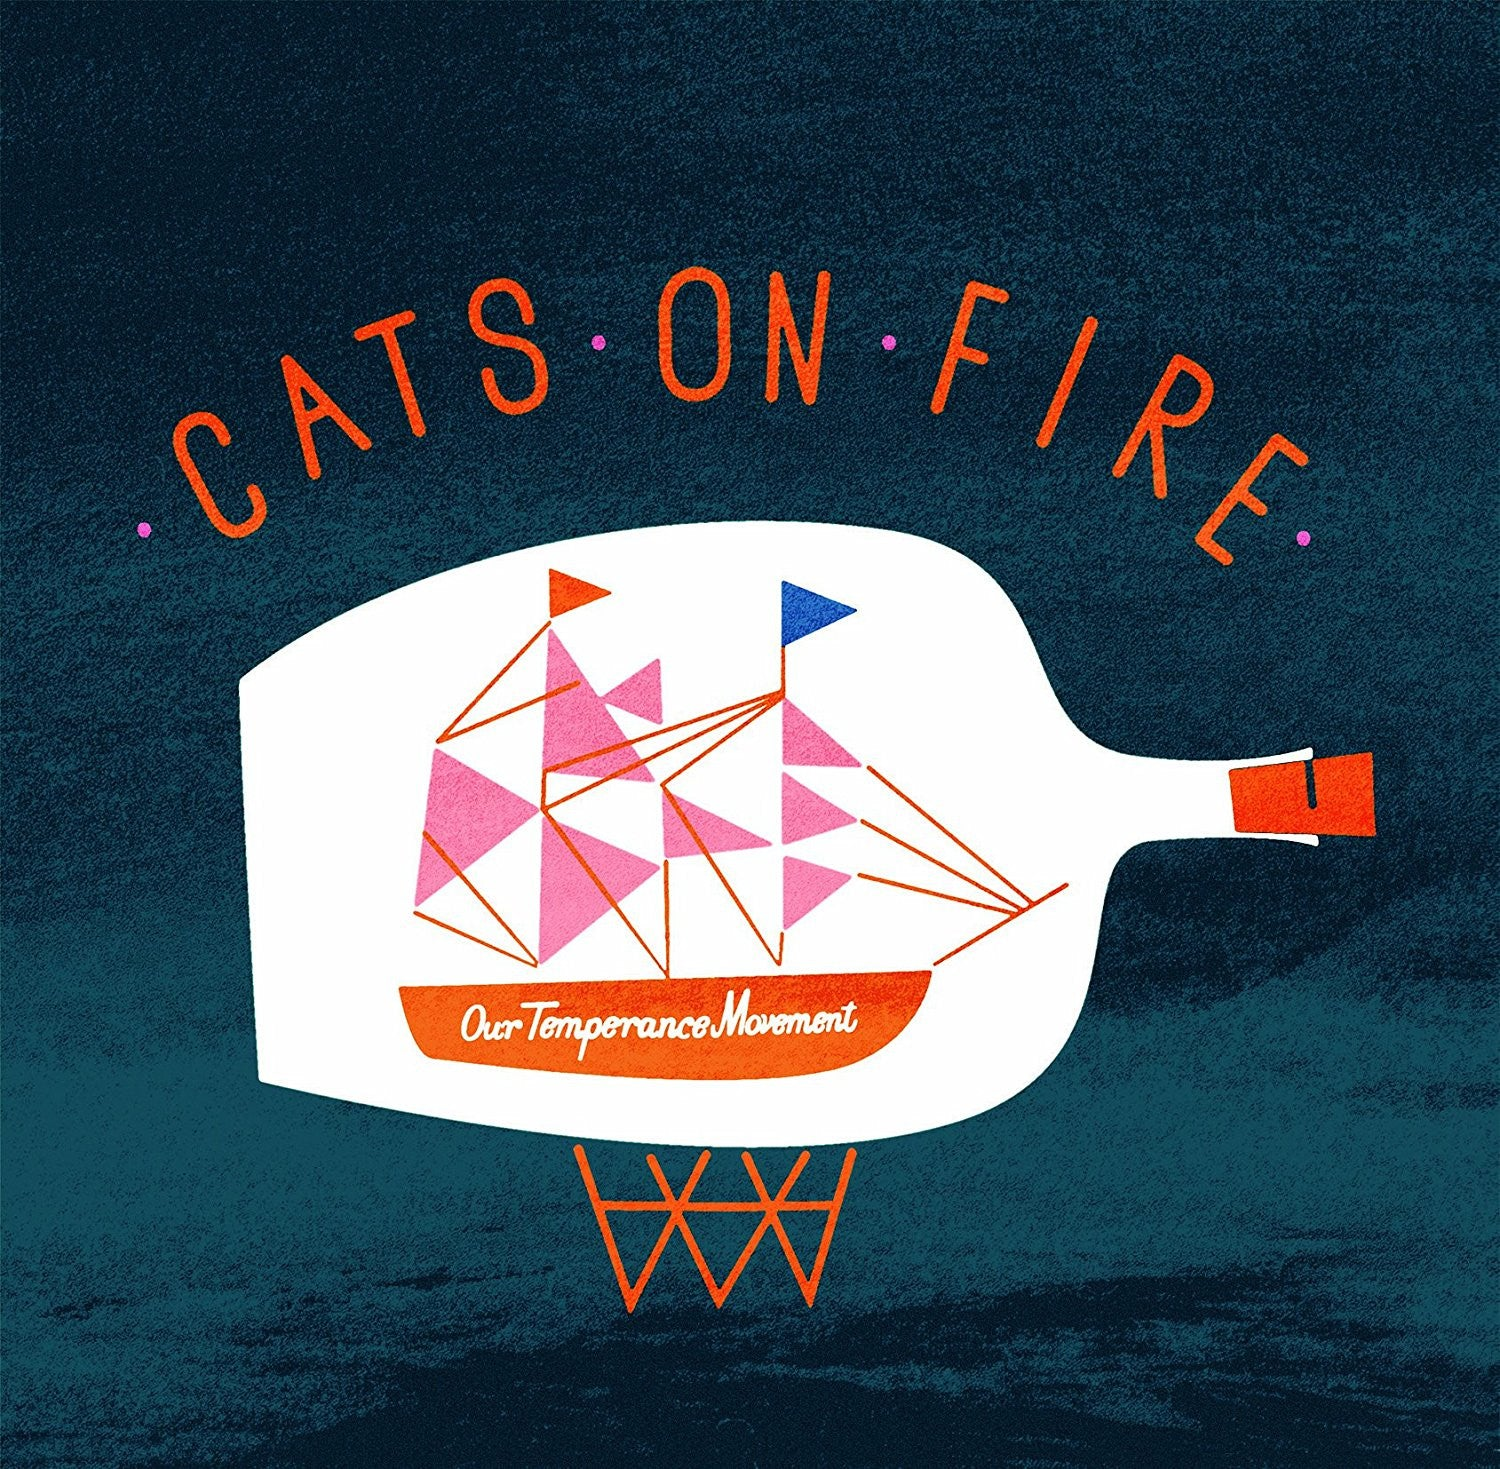 Cats On Fire - Our Temperance Movement